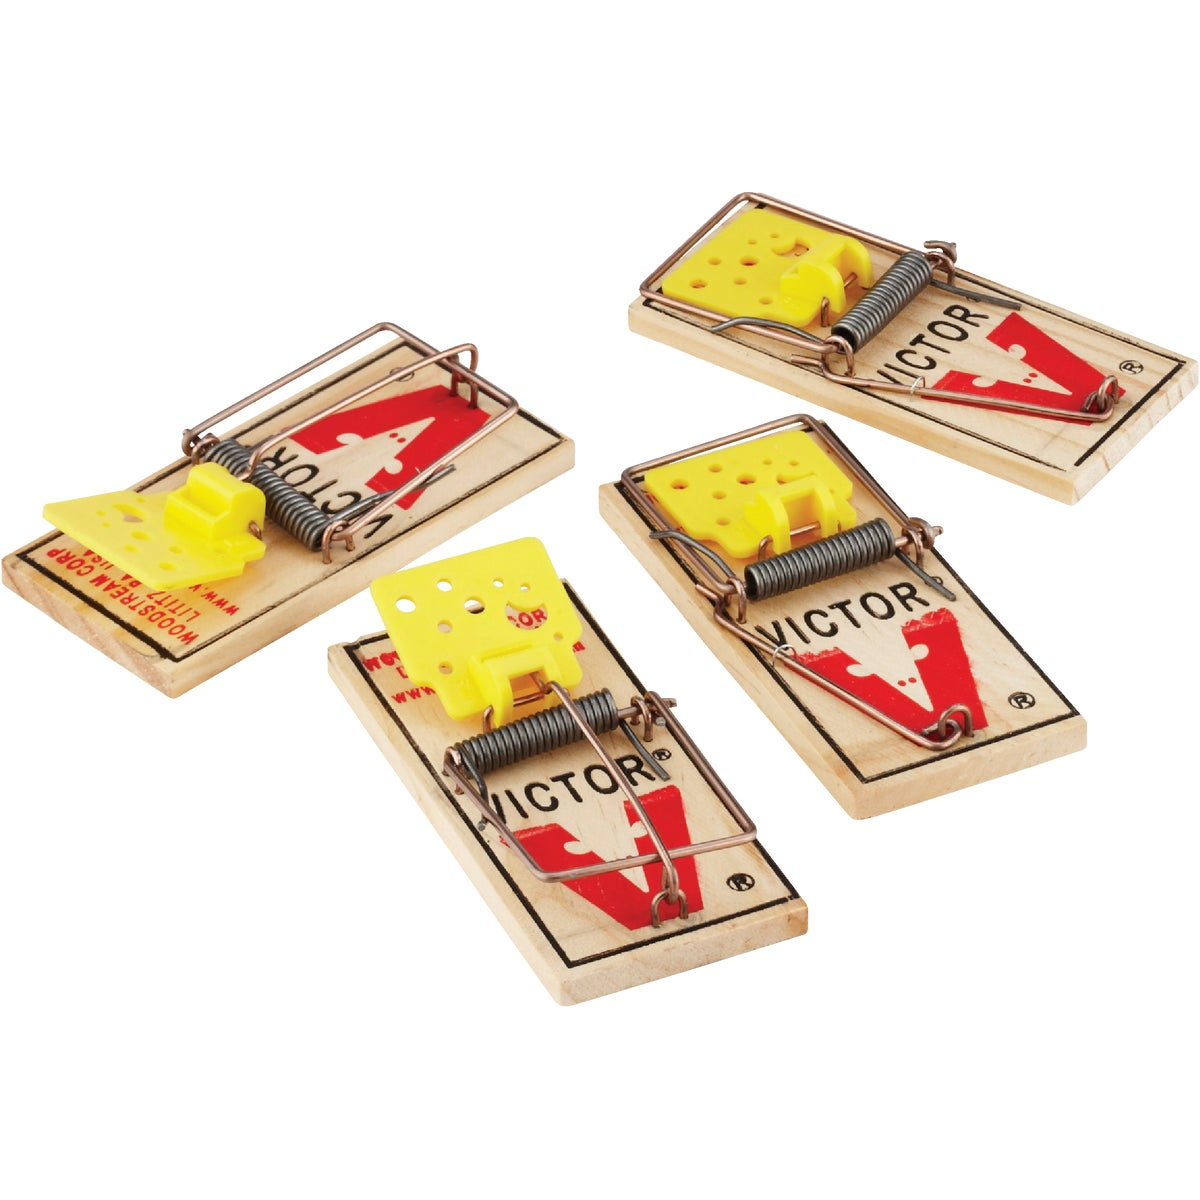 4PK EZSET MOUSE TRAP